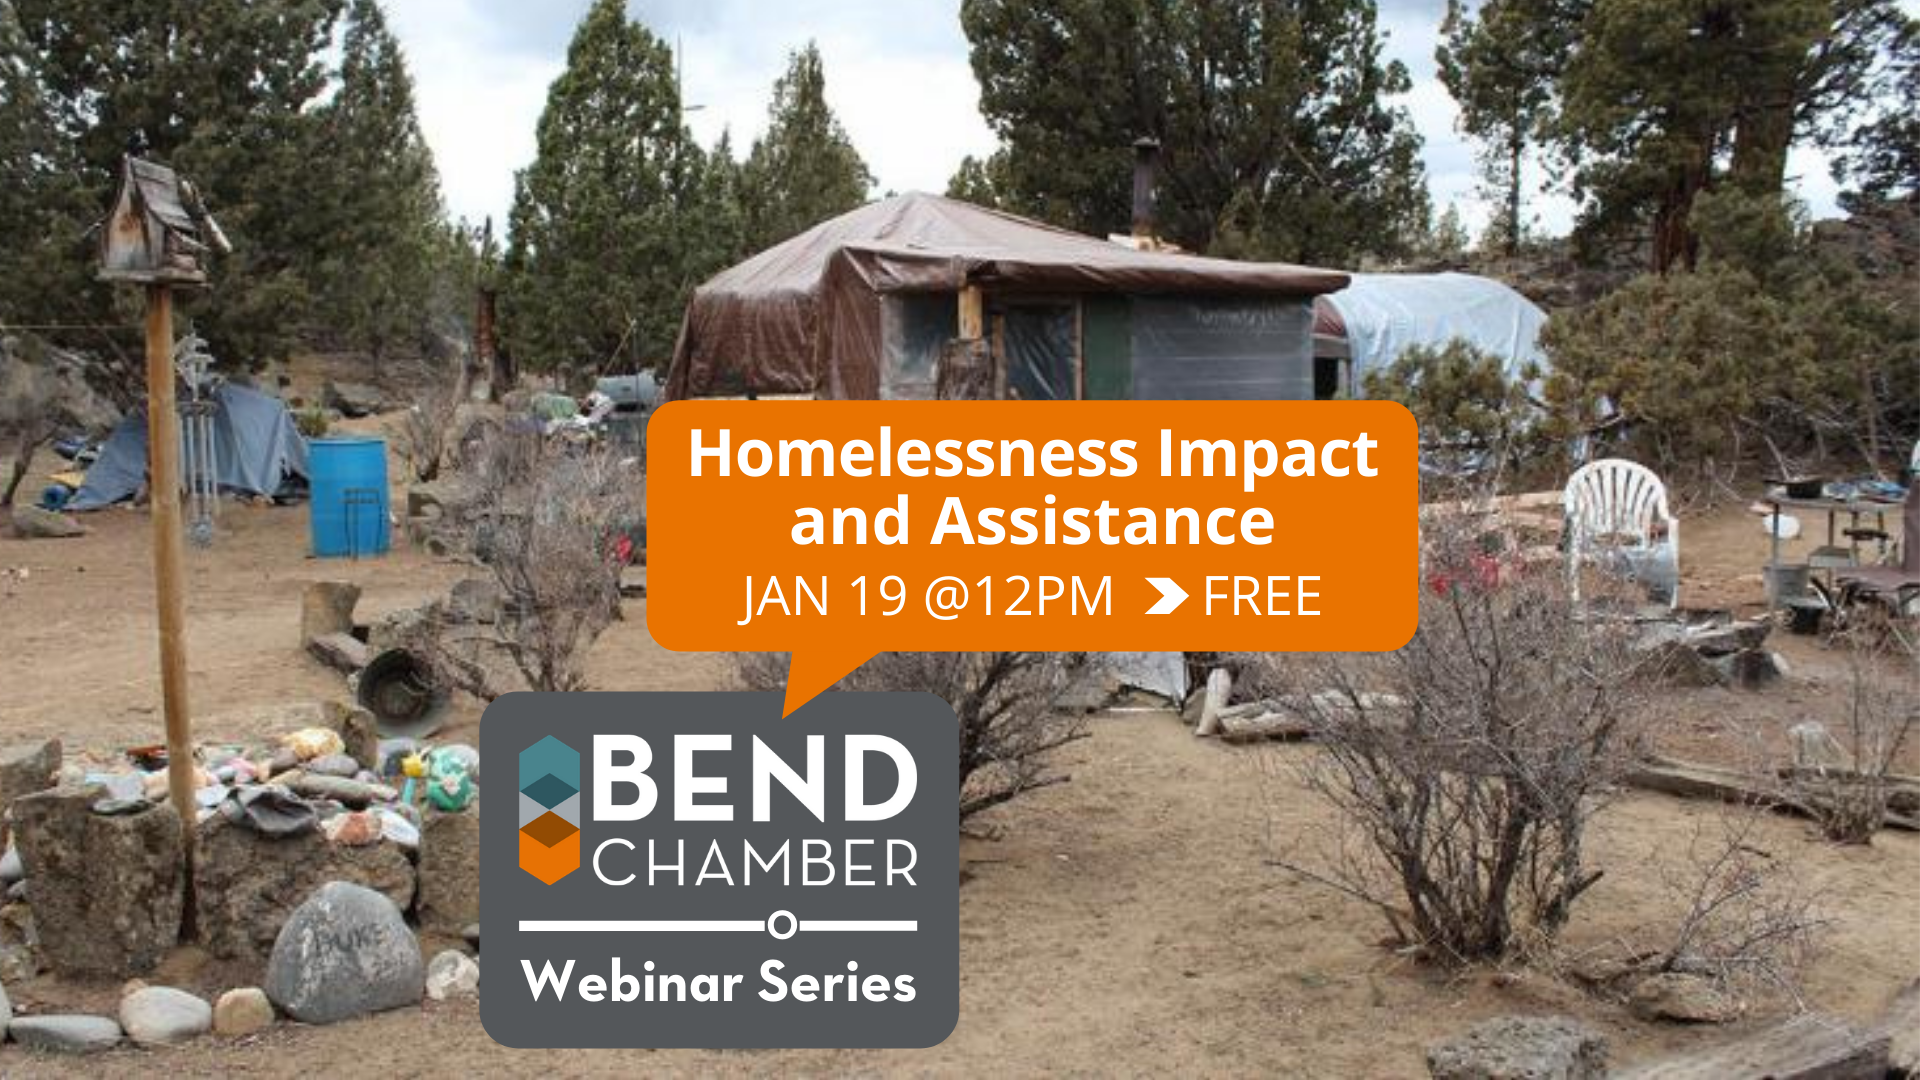 Homelessness Impact and Assistance